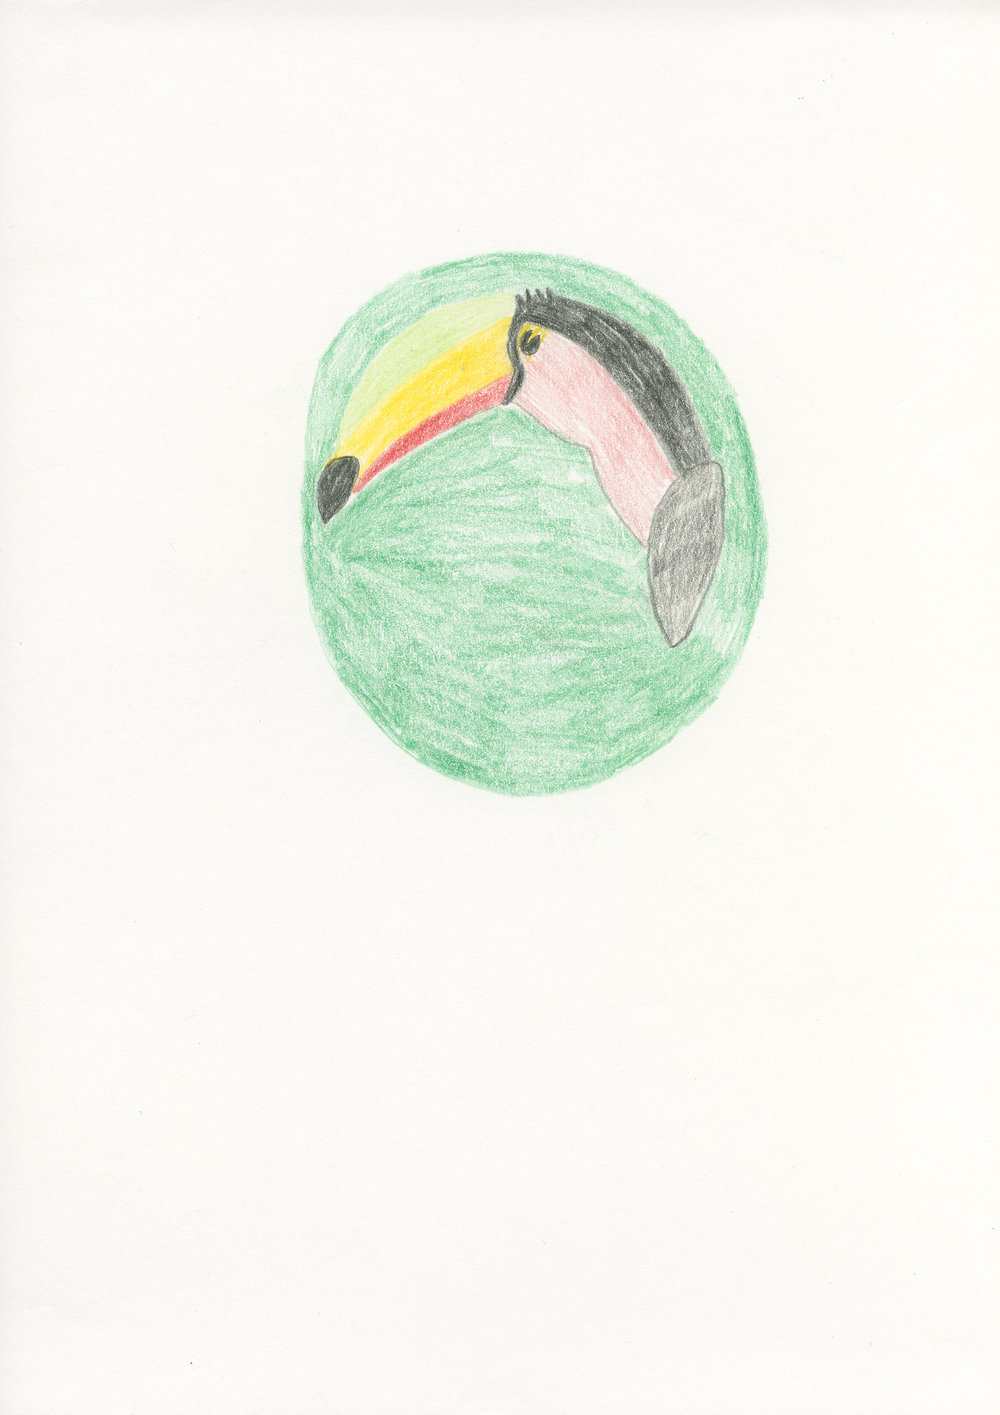 Untitled, 2012, color pencil on paper, 21 x 29,7 cm